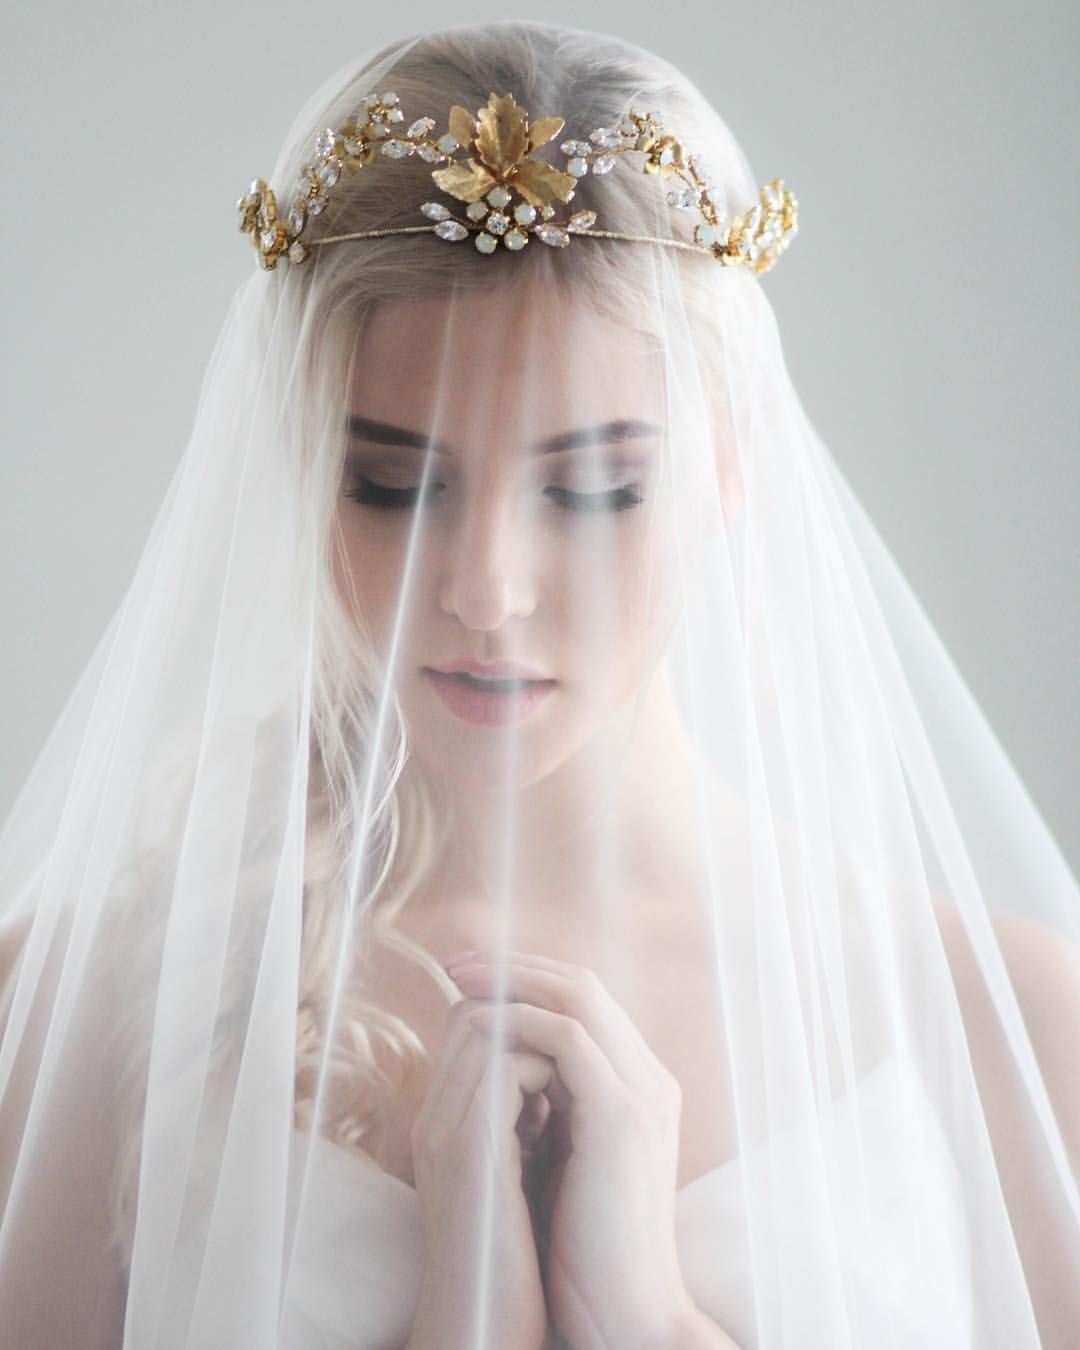 Wedding Veils and Crowns Will be available for orders soon